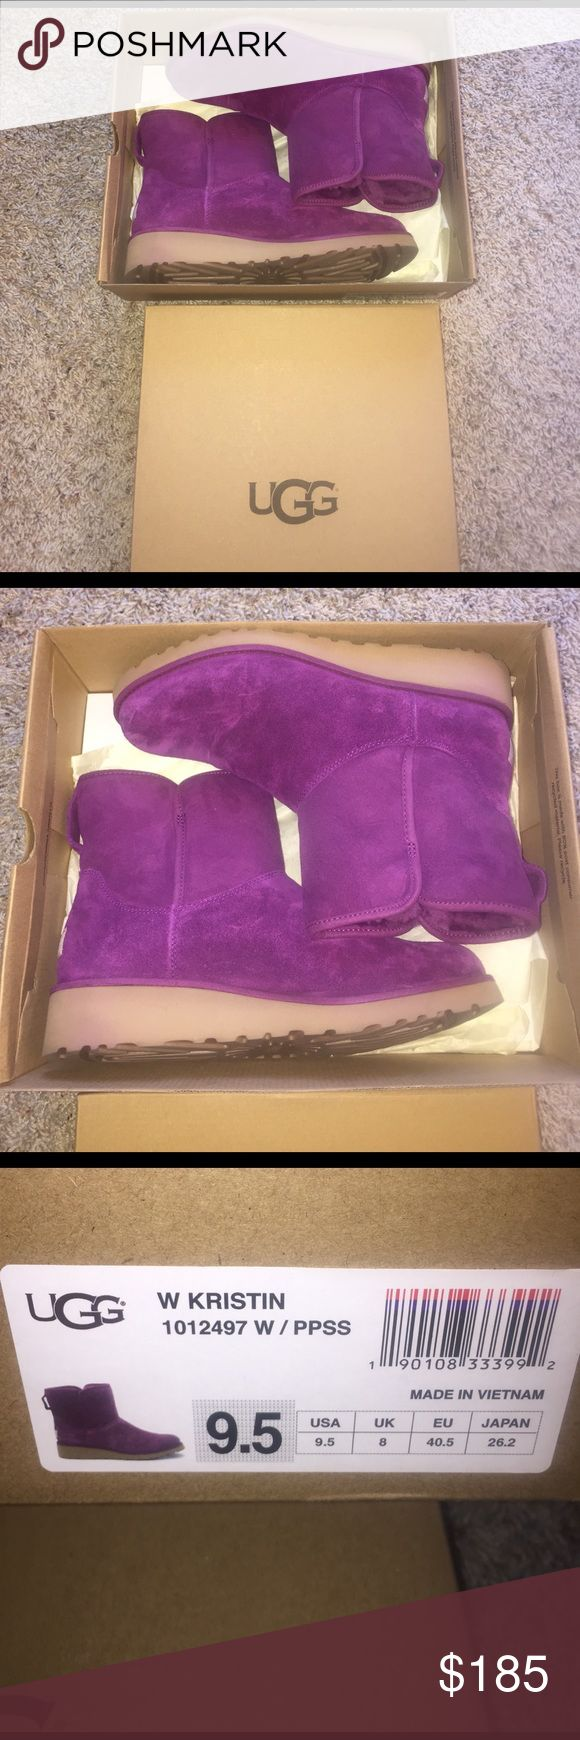 Purple Uggs worn 1x Purple Uggs worn 1x - excellent condition. Christmas gift but I need a bigger size unfortunately my brother can't find the receipt for me to exchange. Love them but they have to find a new home 💜💜💜💜💜💜 UGG Shoes Ankle Boots & Booties